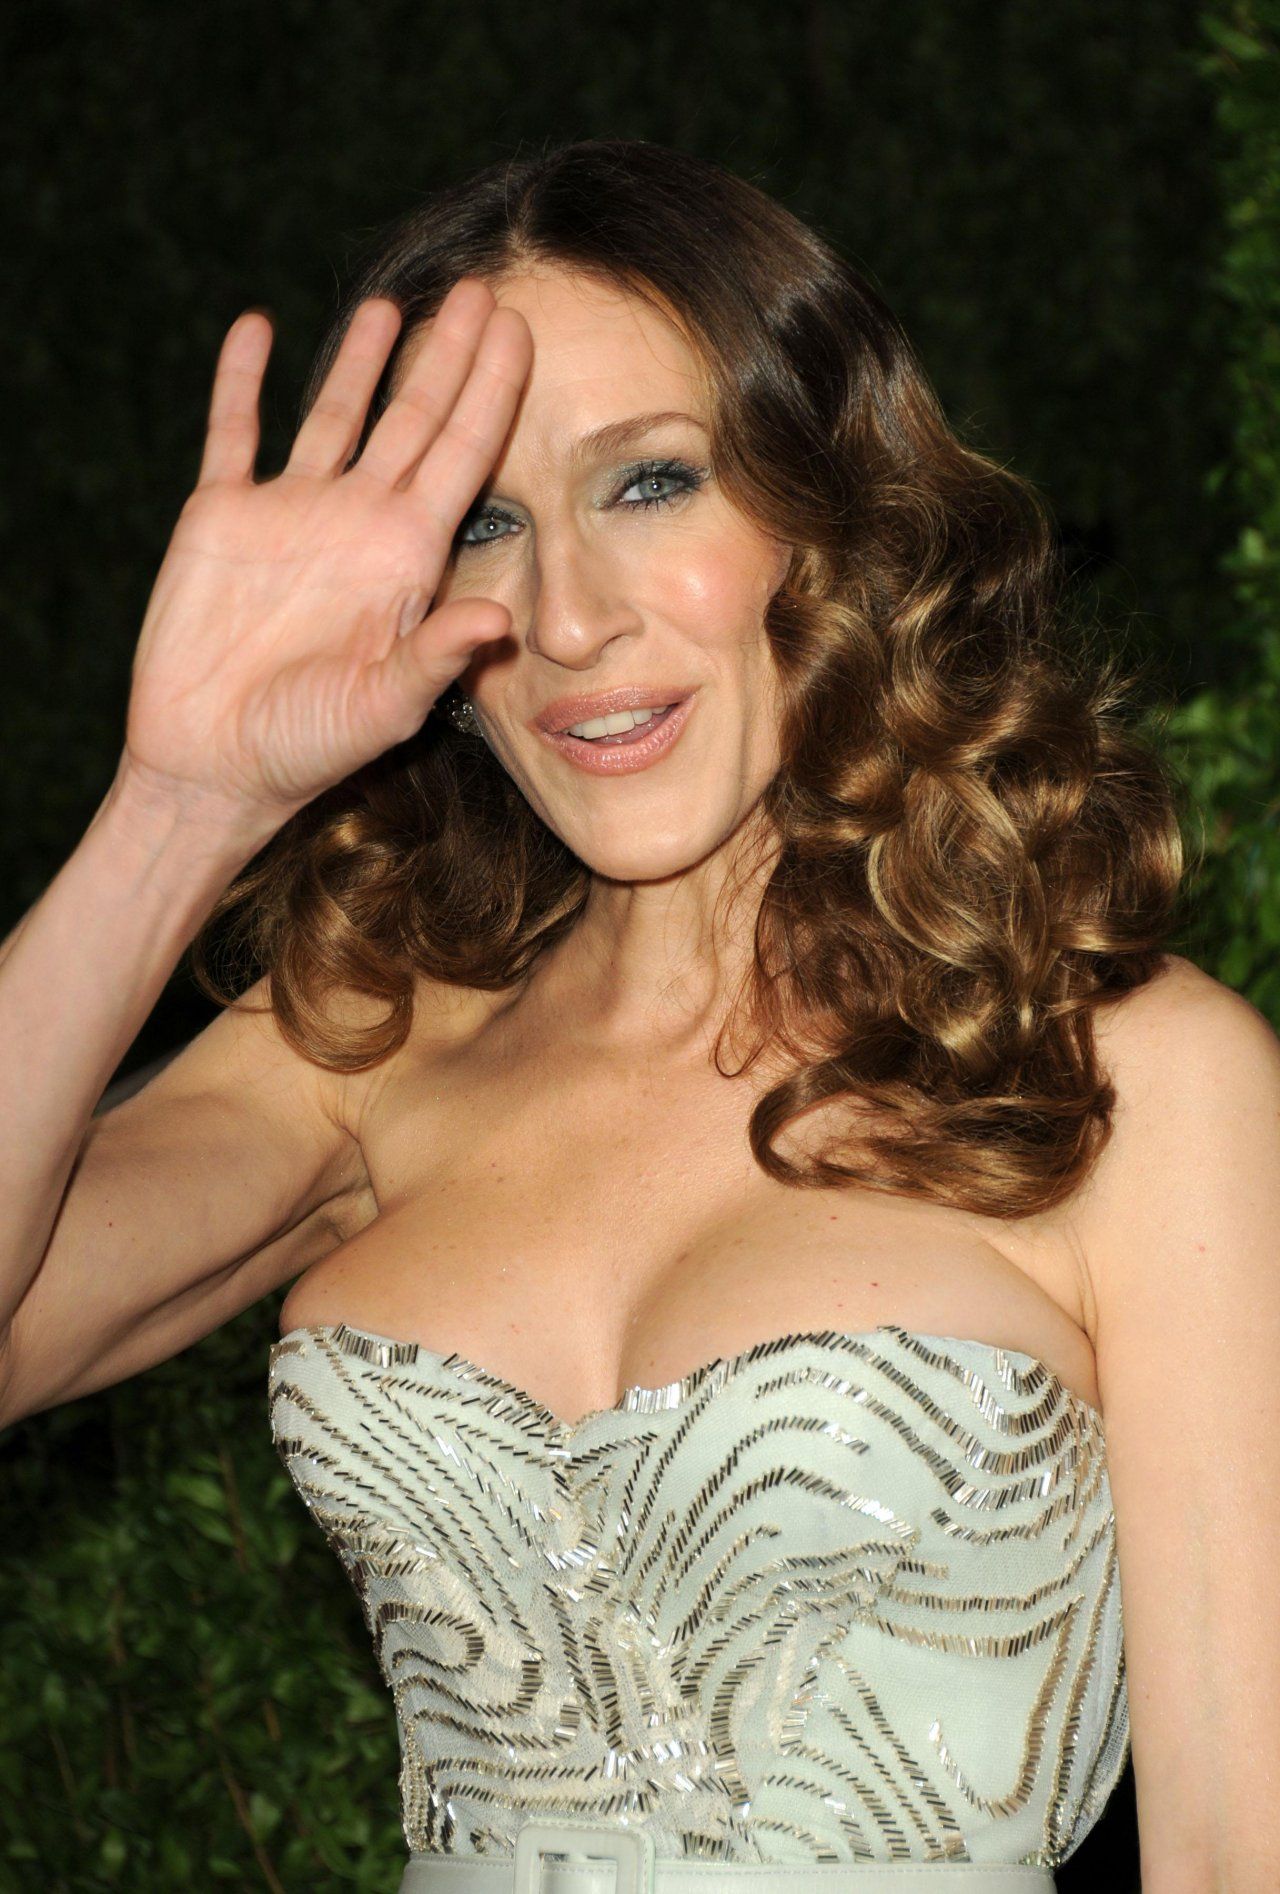 Sarah Jessica Parker leaked wallpapers